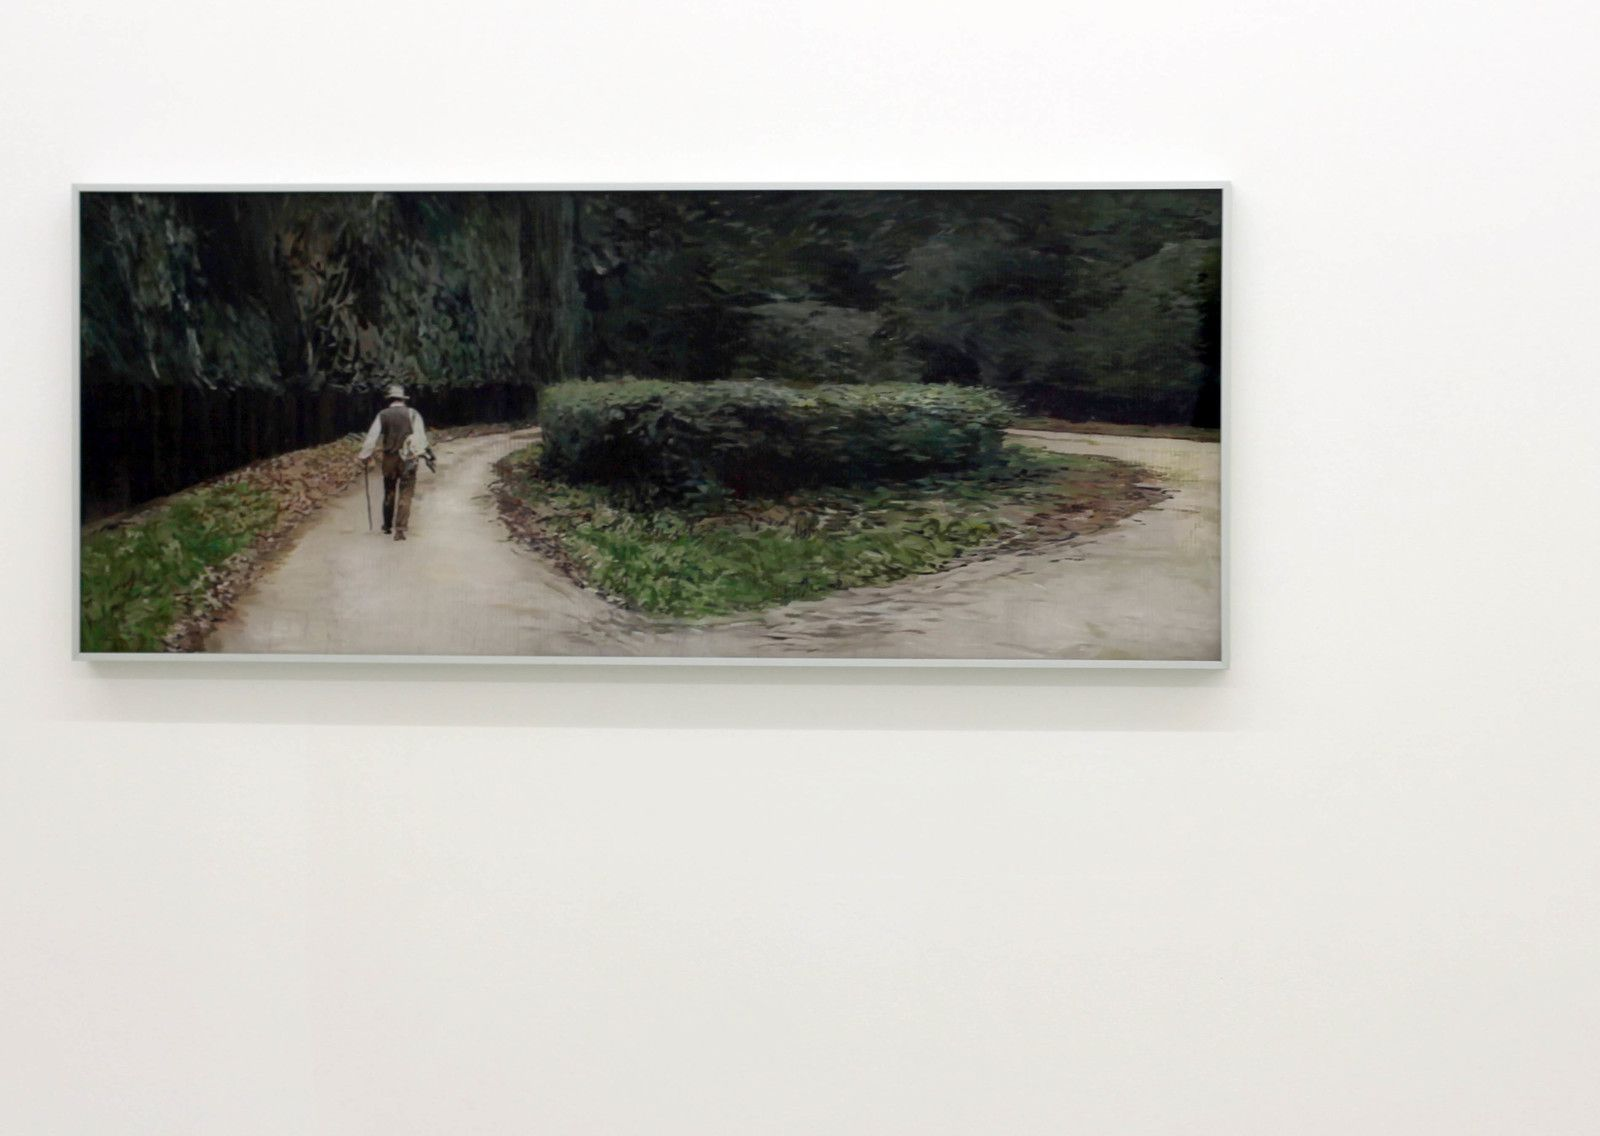 """The Trail (After Sebald), 2019 de Gil Heitor CORTESÃO - Courtesy Galerie Suzanne TARASIEVE © Photo Éric Simon"